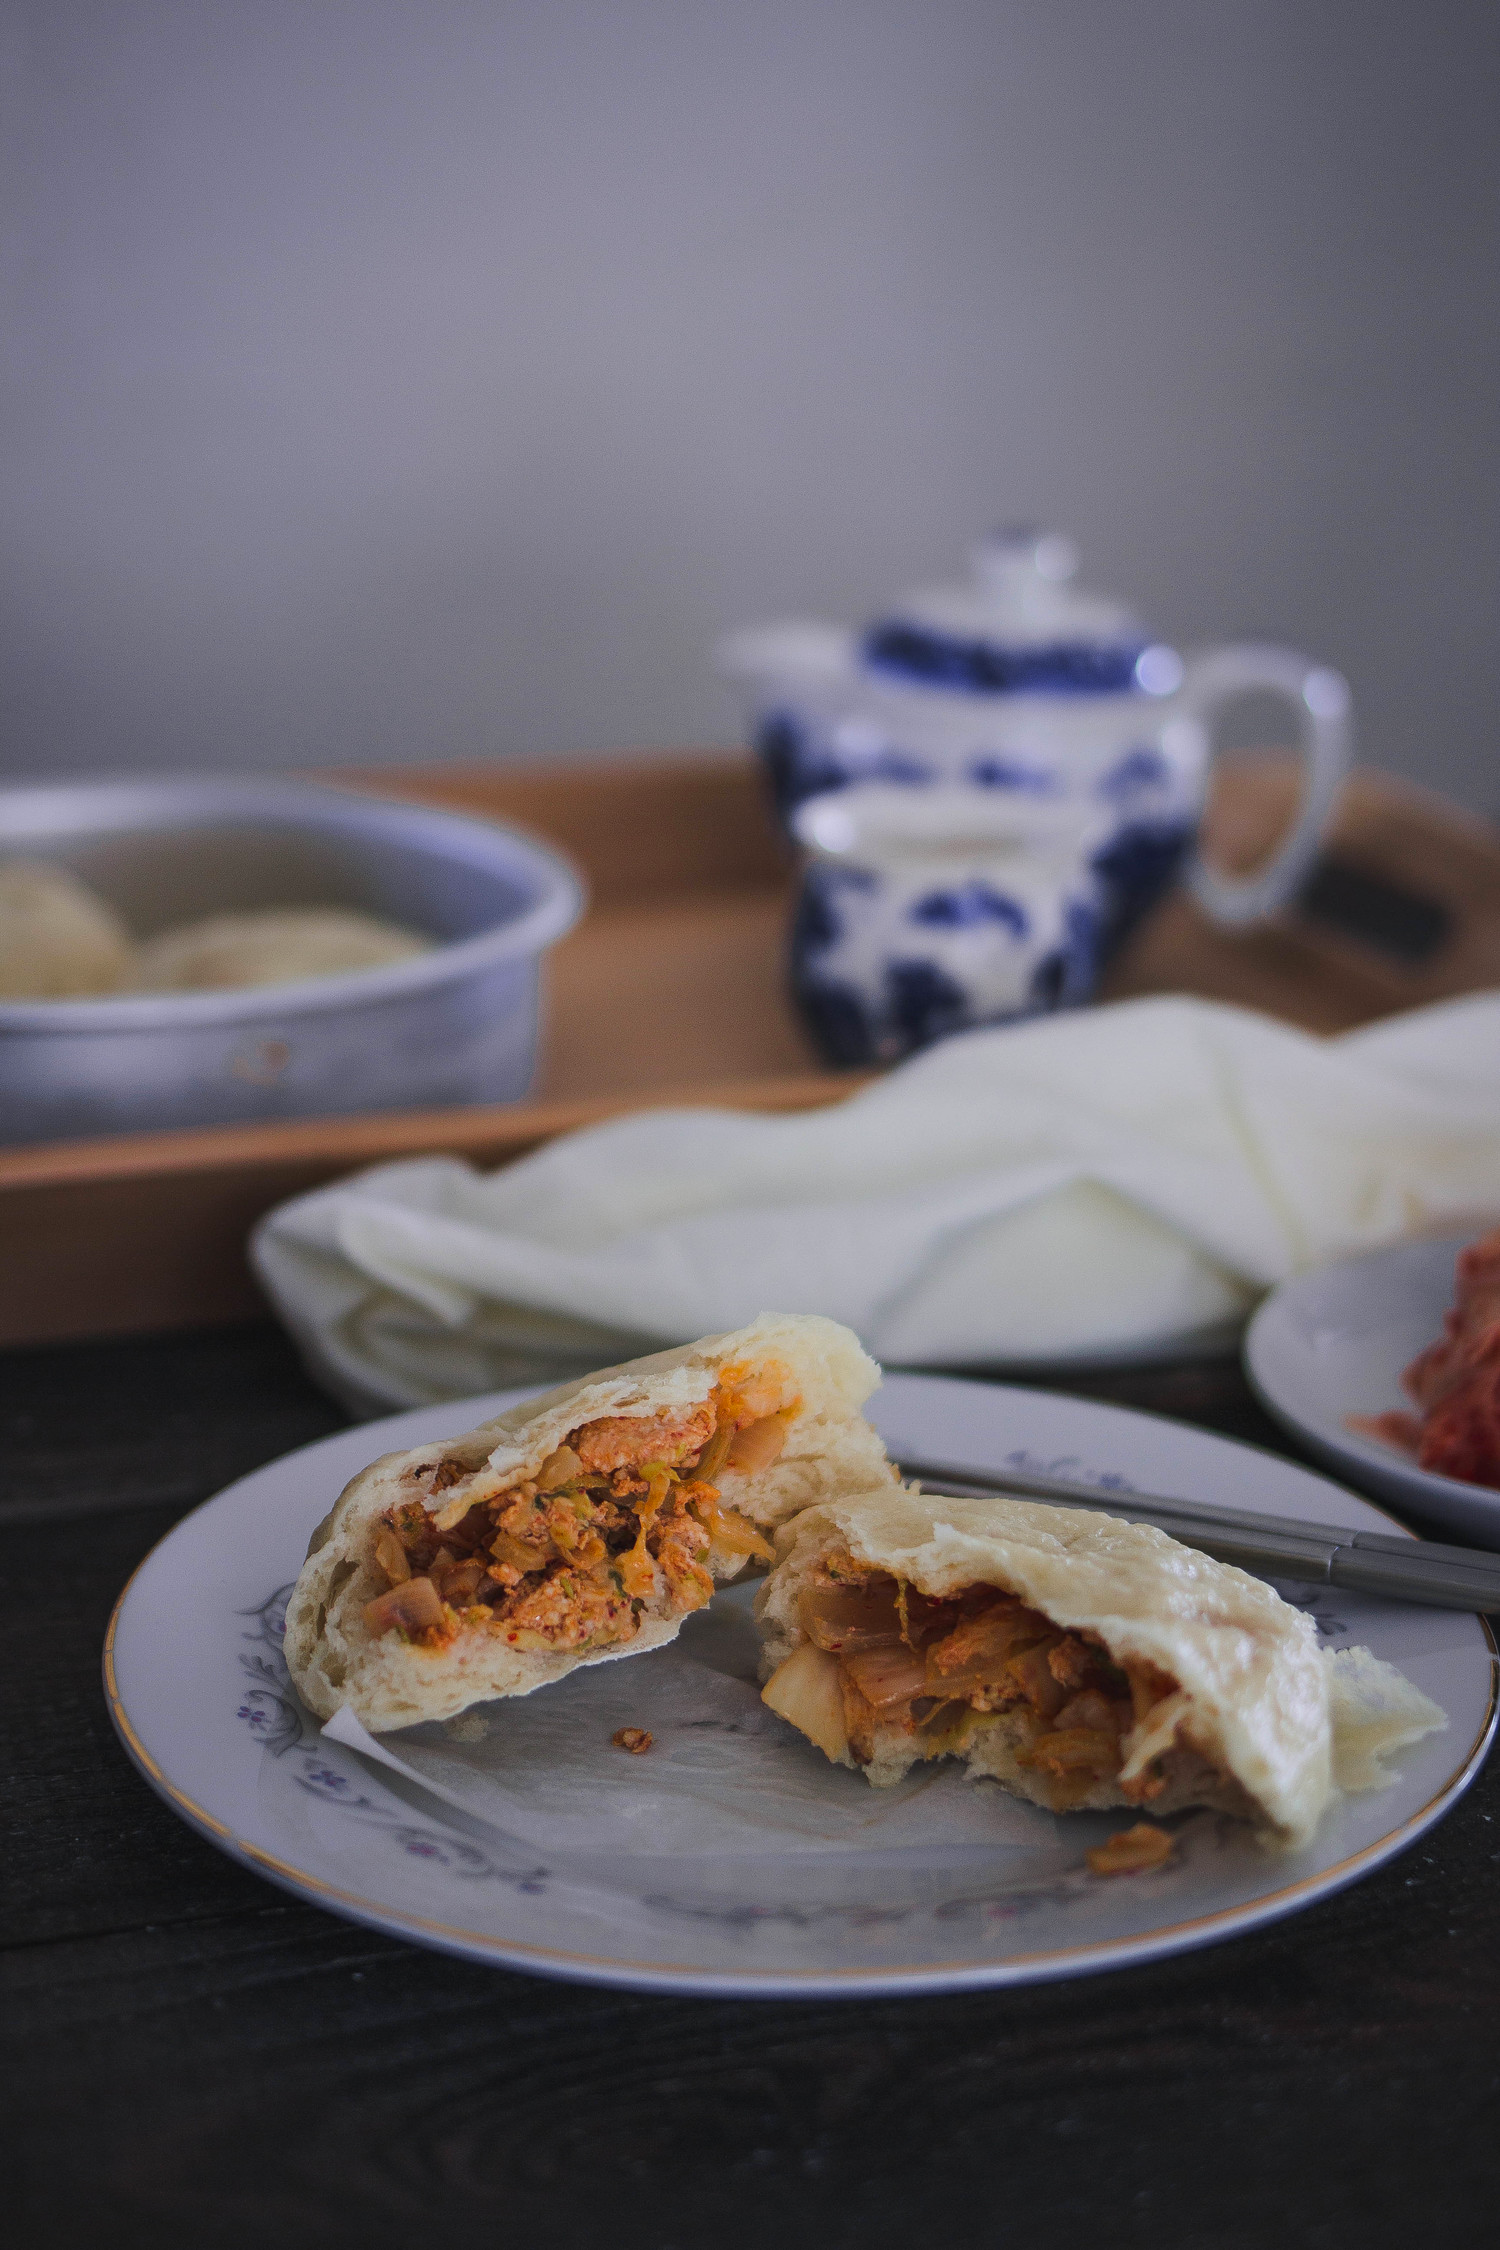 Kimchi and pork jjinbbang   by fit for the soul